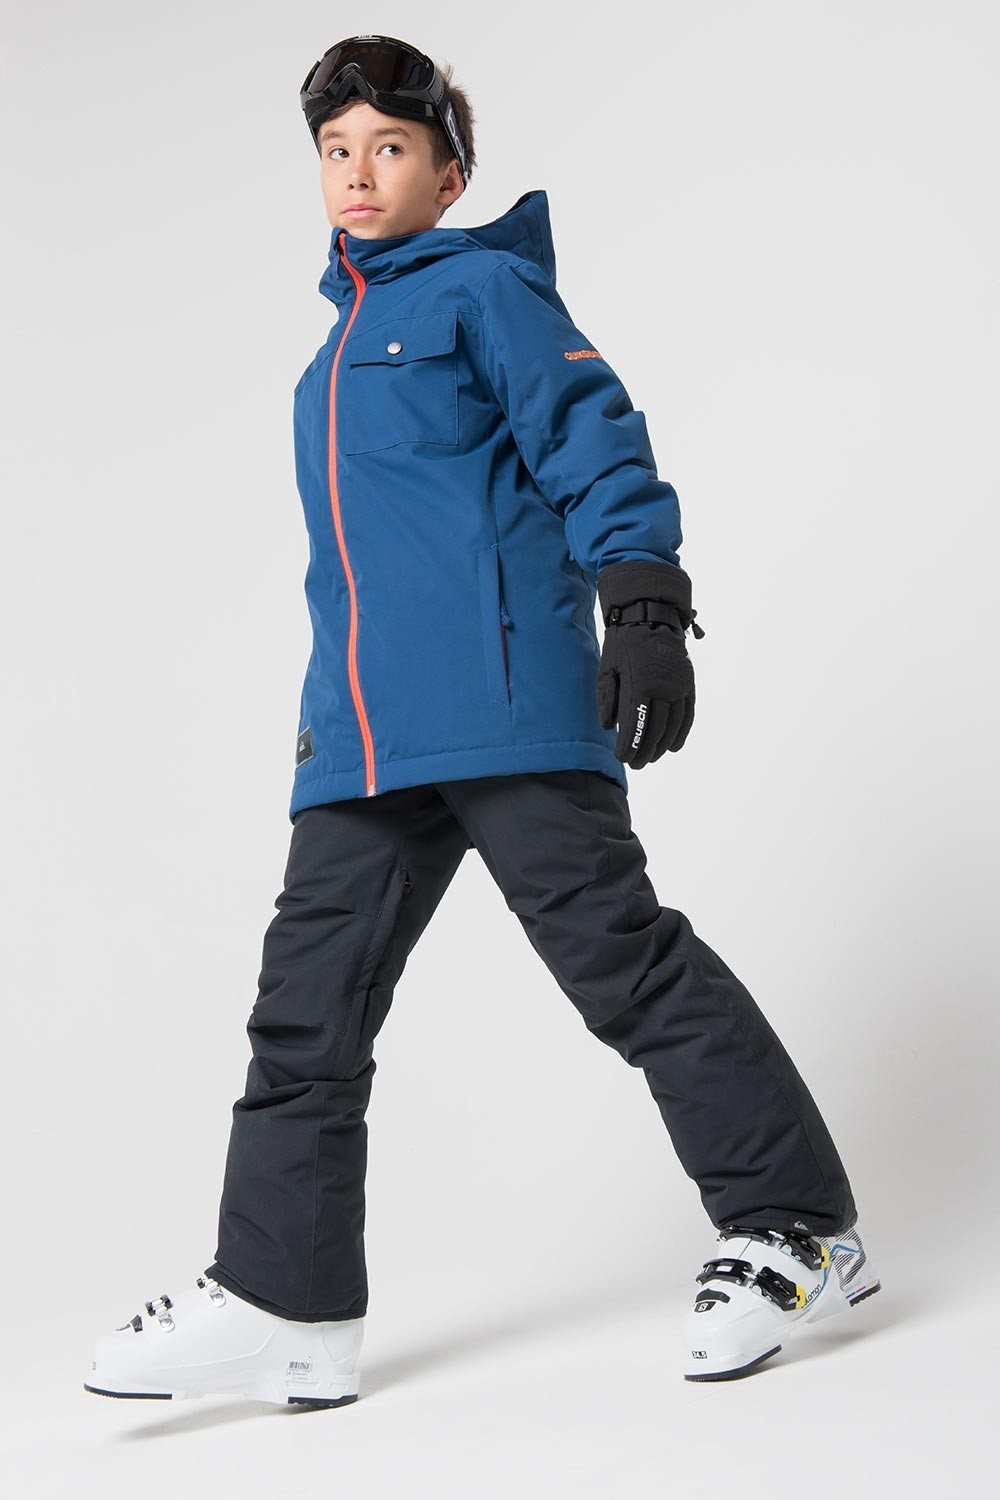 exclusive deals latest trends of 2019 novel style Boy ski outfit